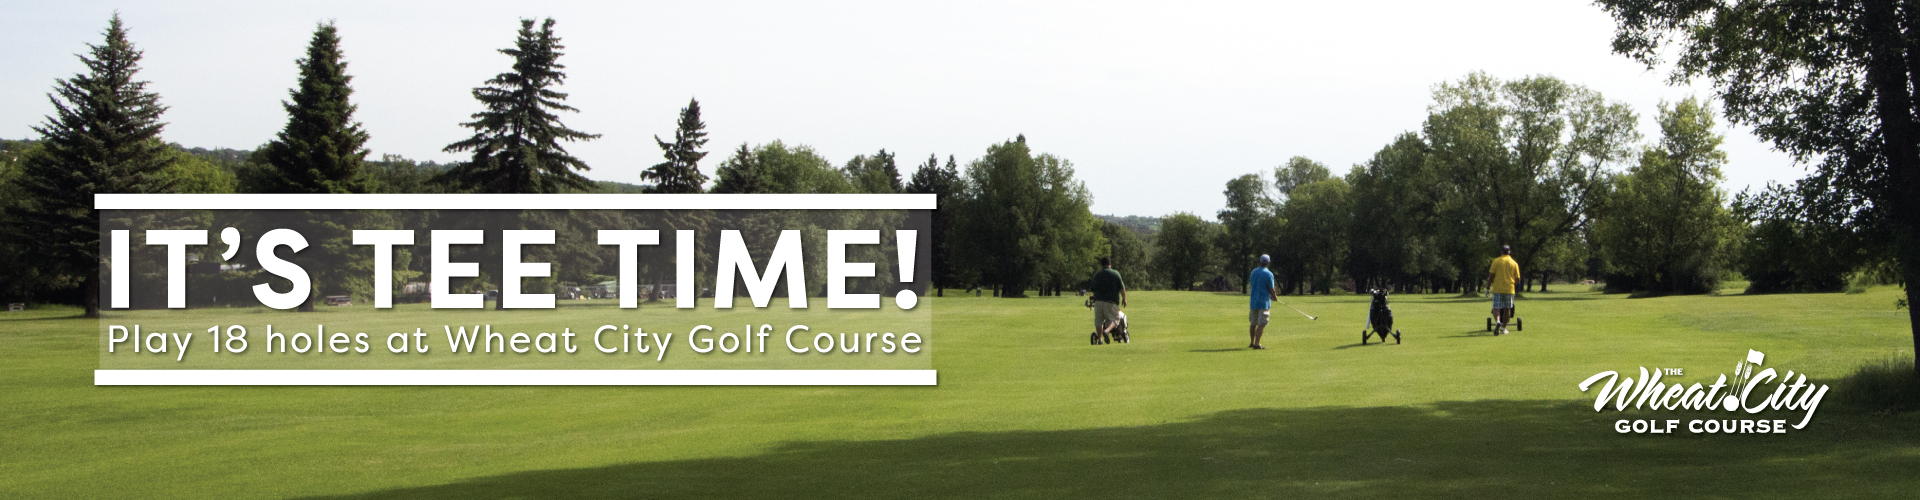 Wheat City Golf Course - banner